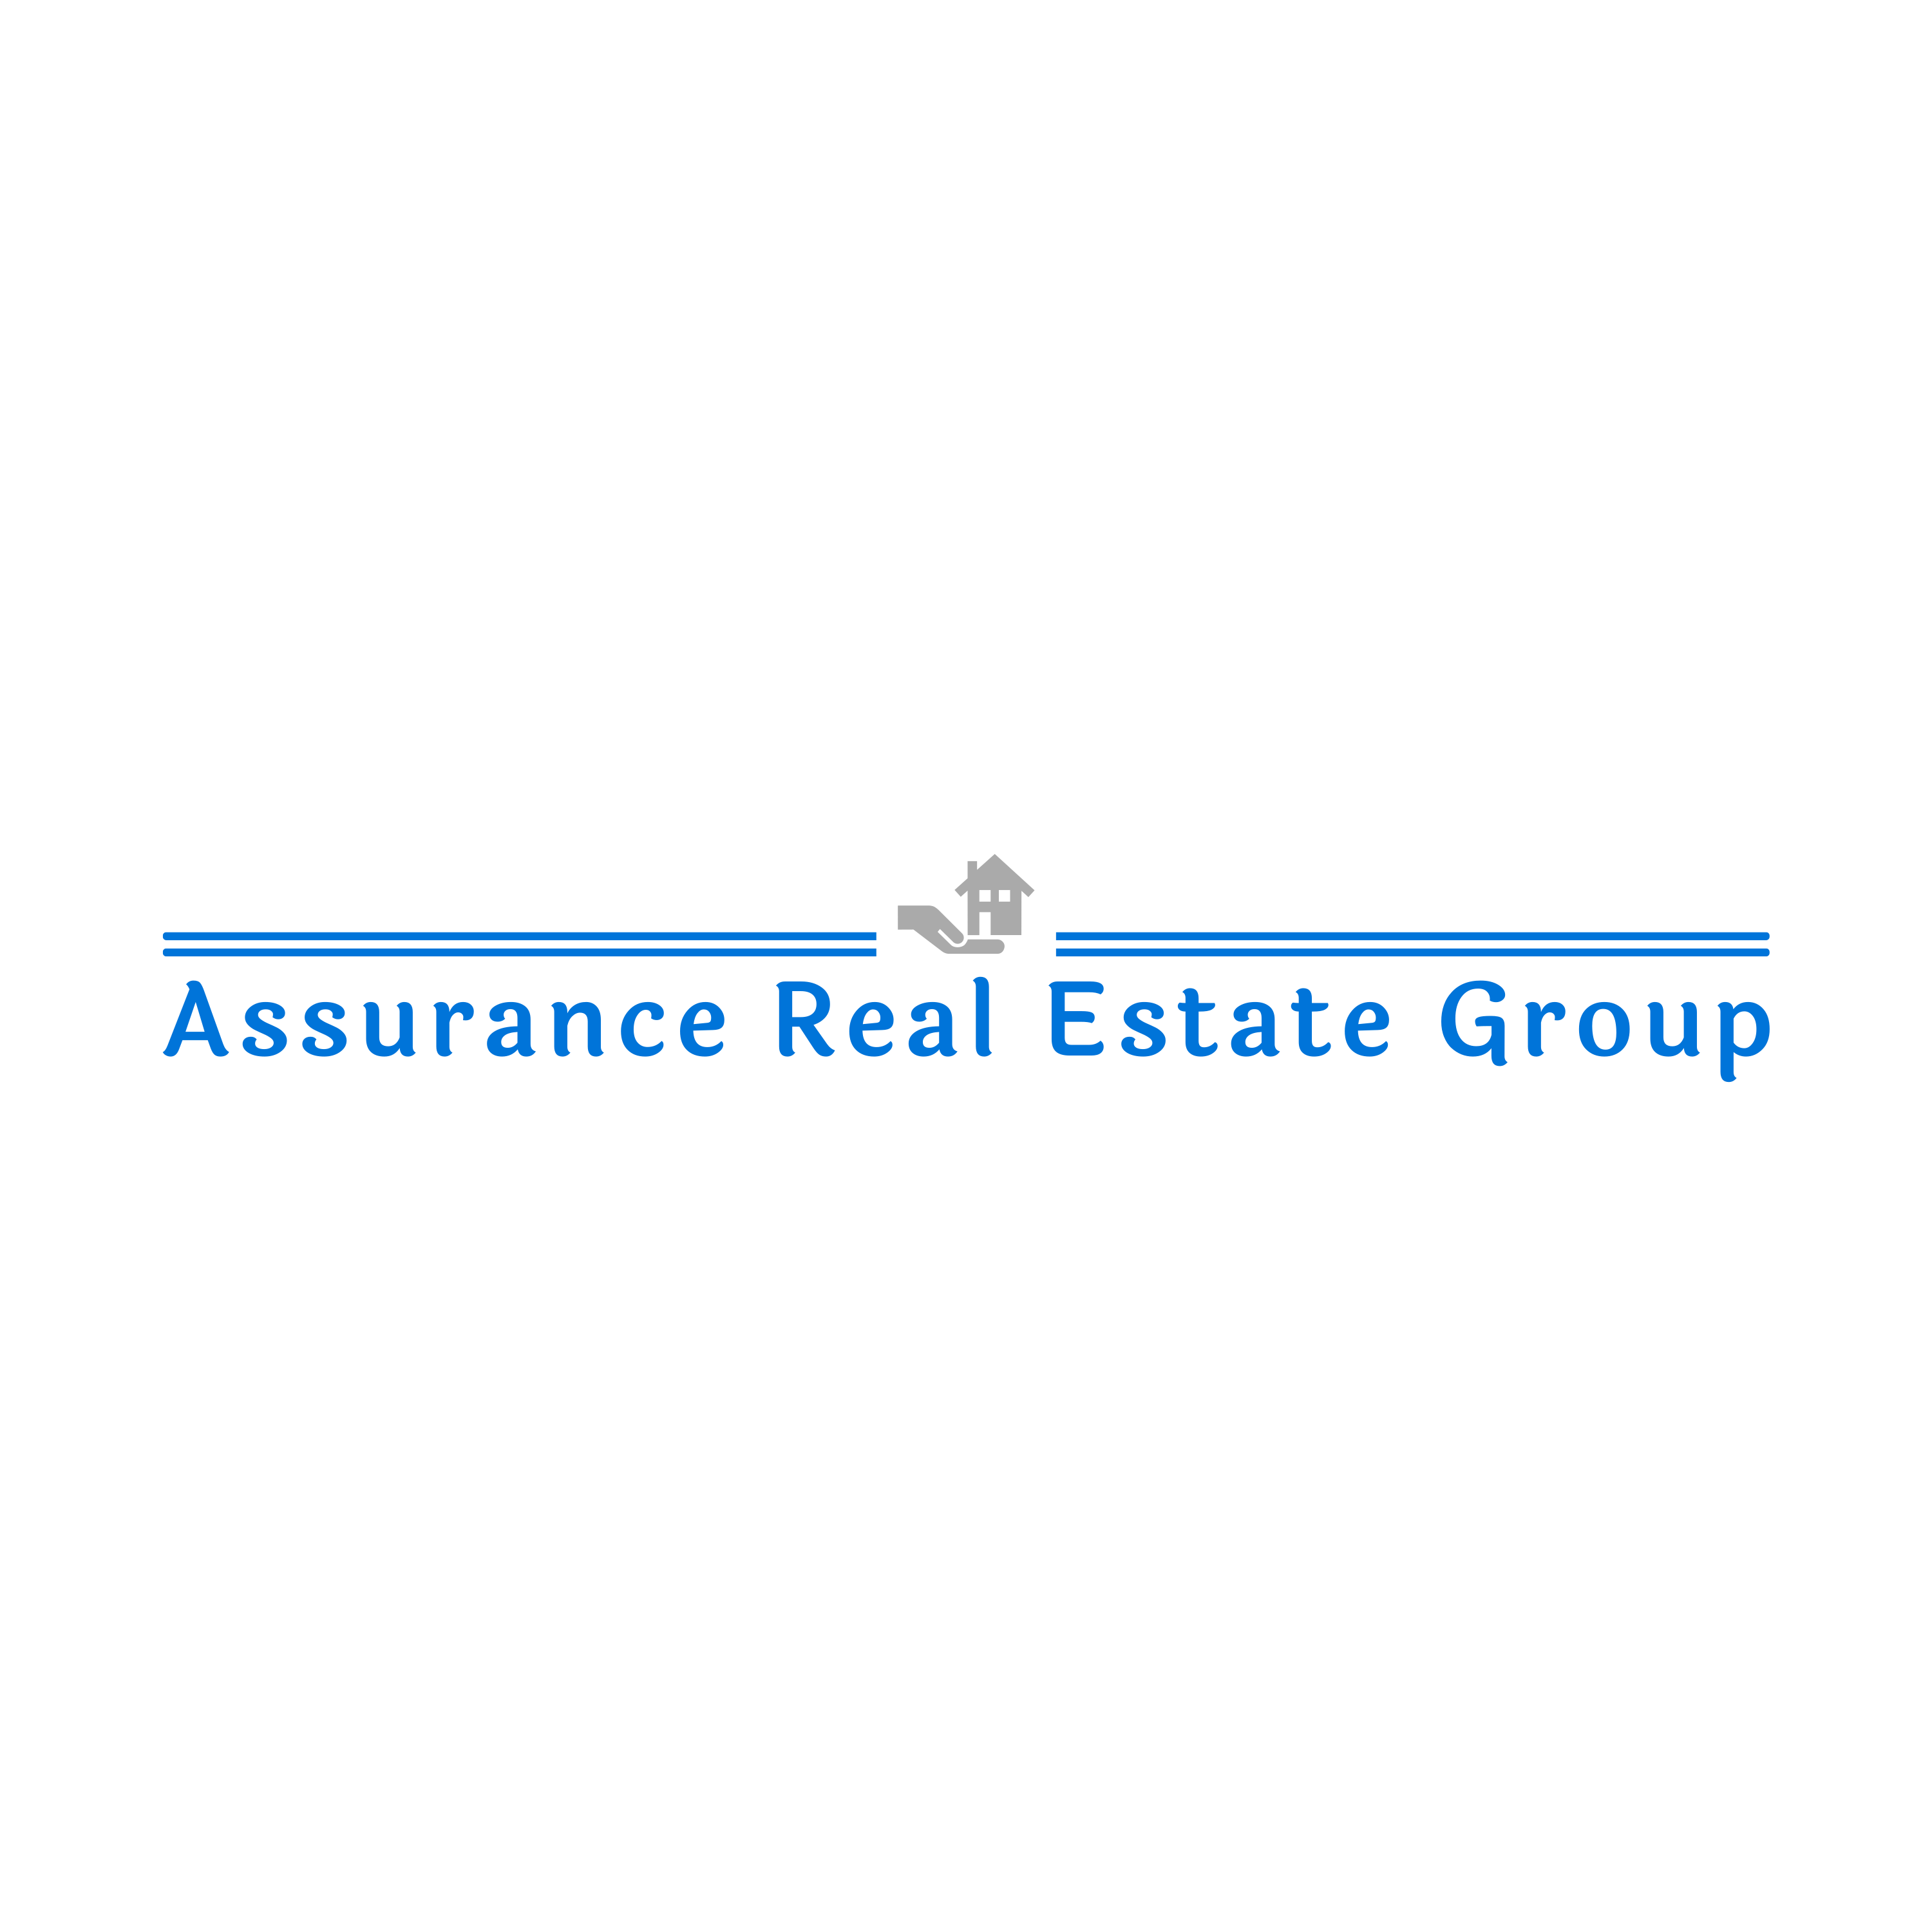 Assurance Real Estate Group